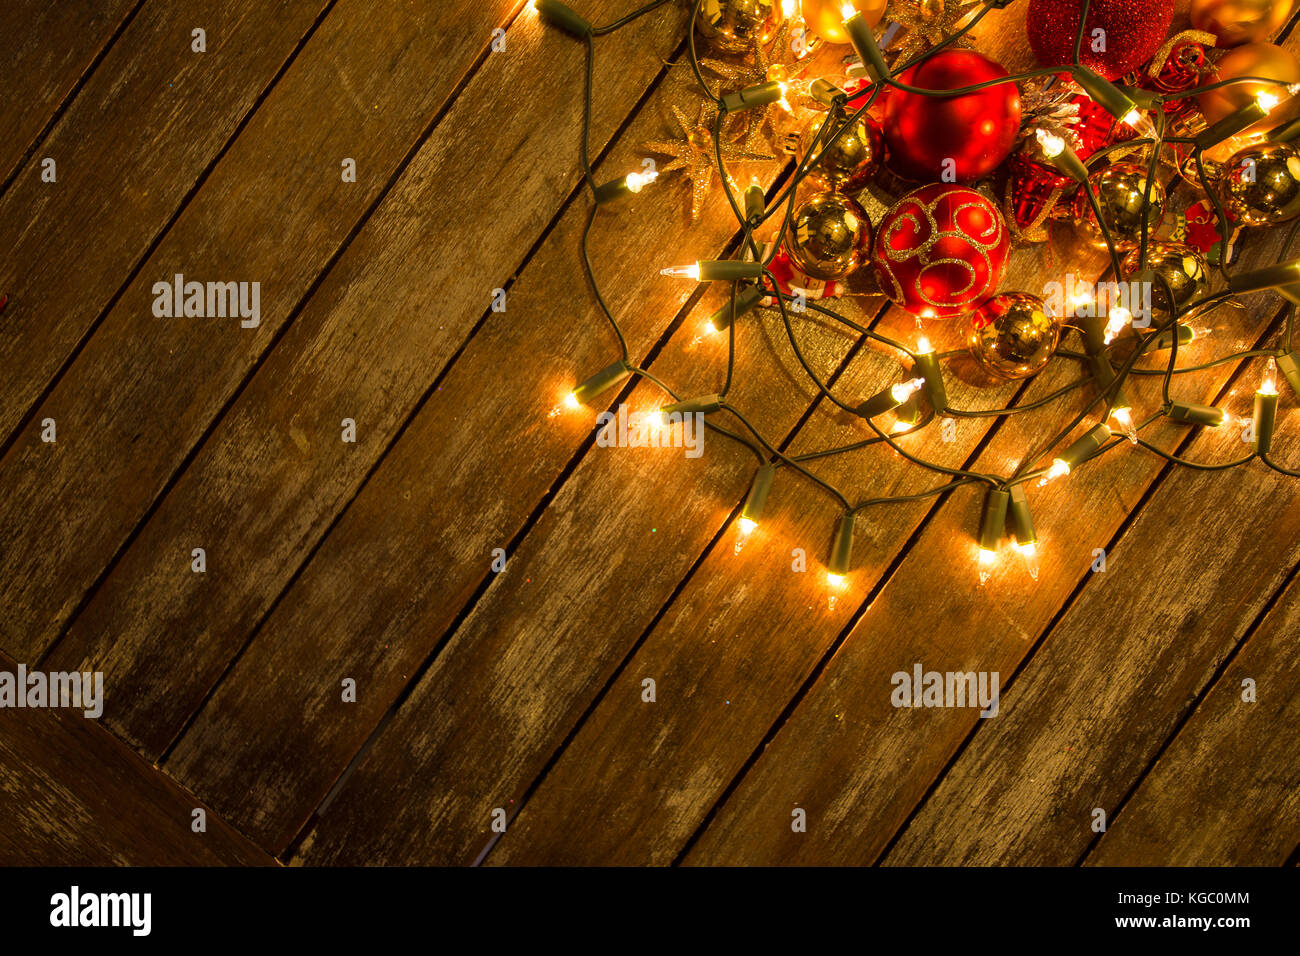 christmas new year fairy lights on a wooden table to be used as background or texture